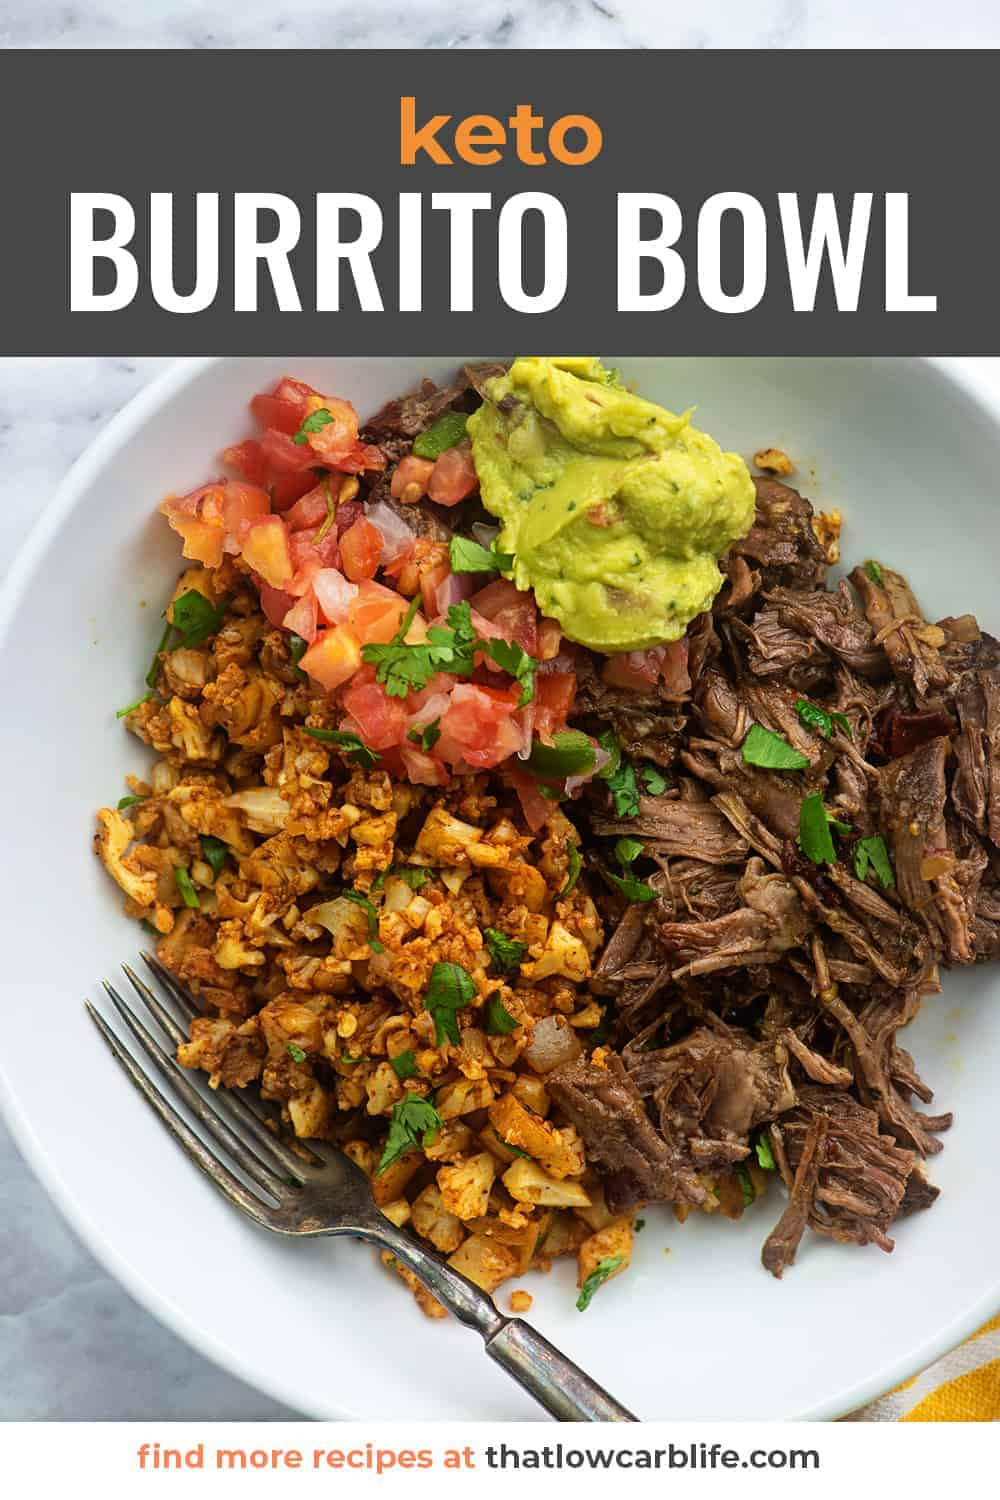 keto burrito bowl in white bowl